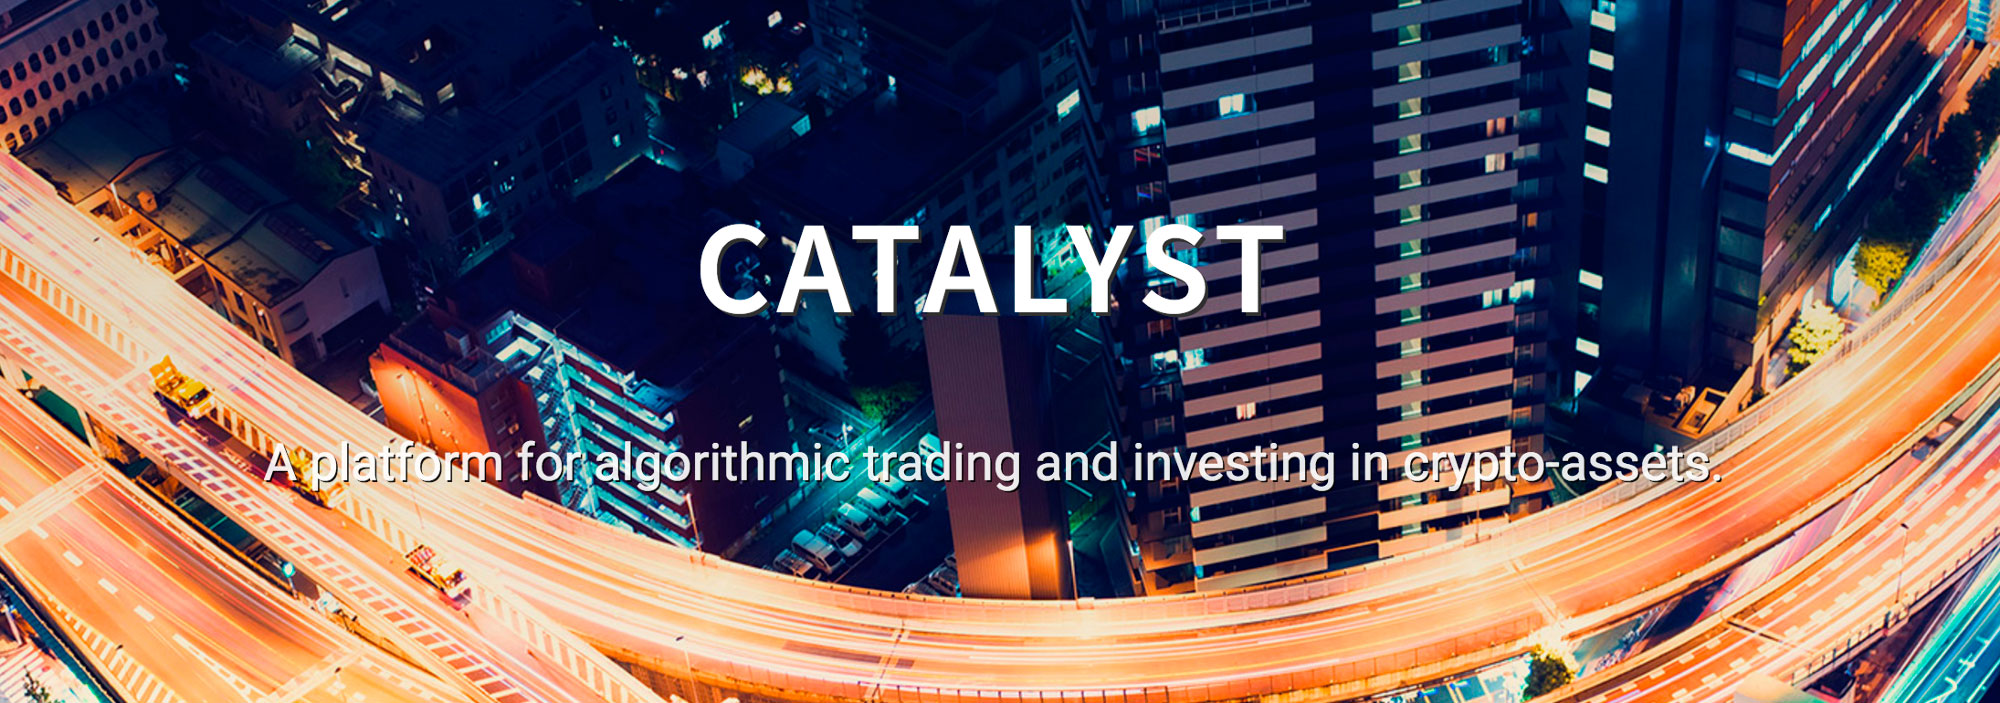 catalyst crypto-assets